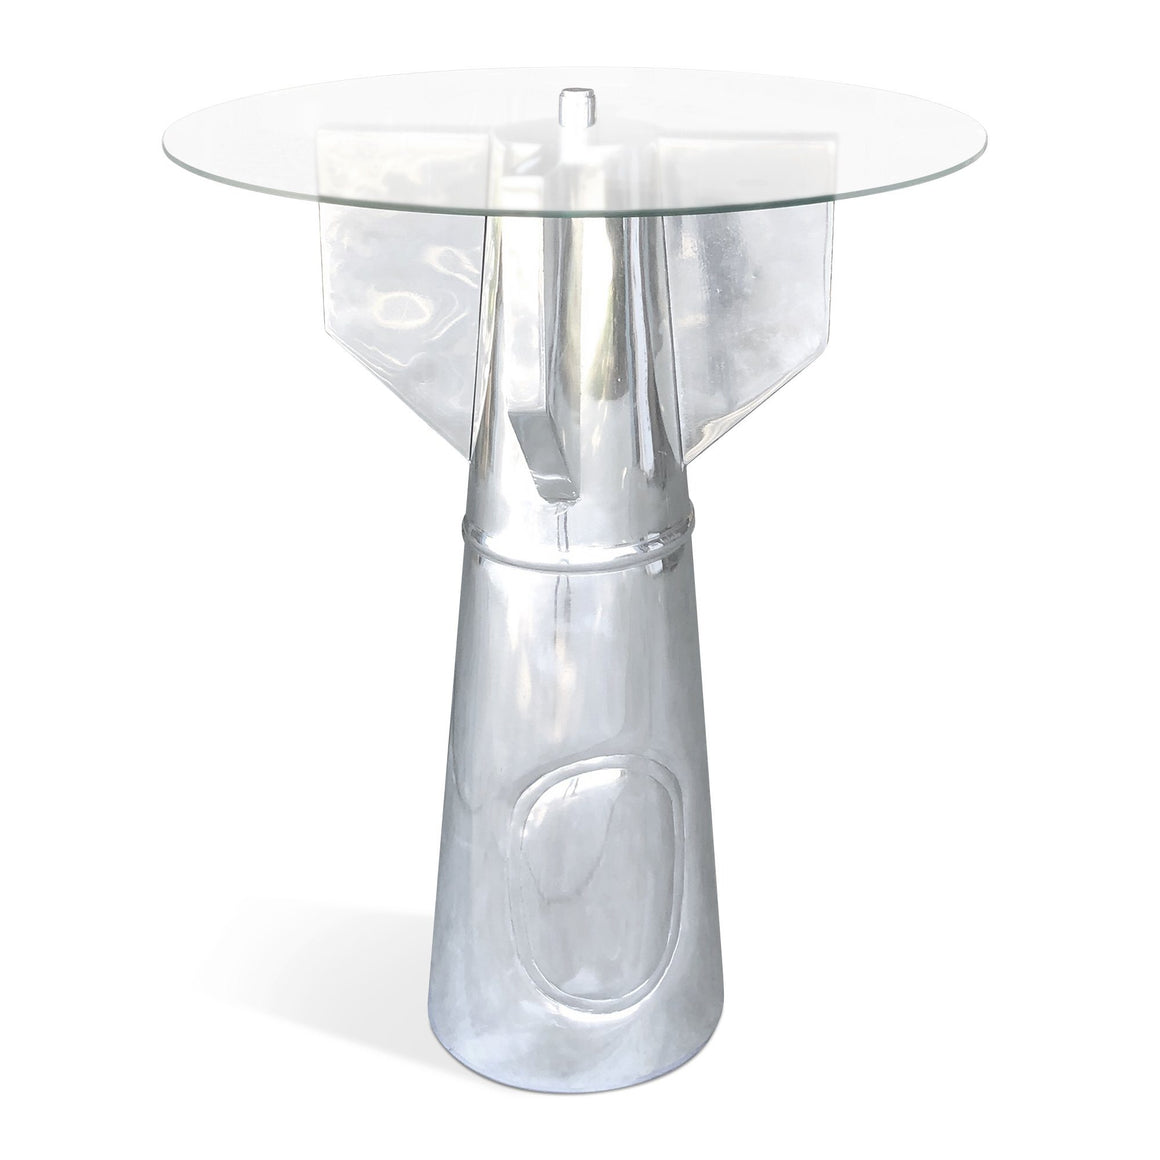 Aviator WWII Bombshell Accent Table - Polished Aluminum - Glass Top-Rustic Deco Incorporated